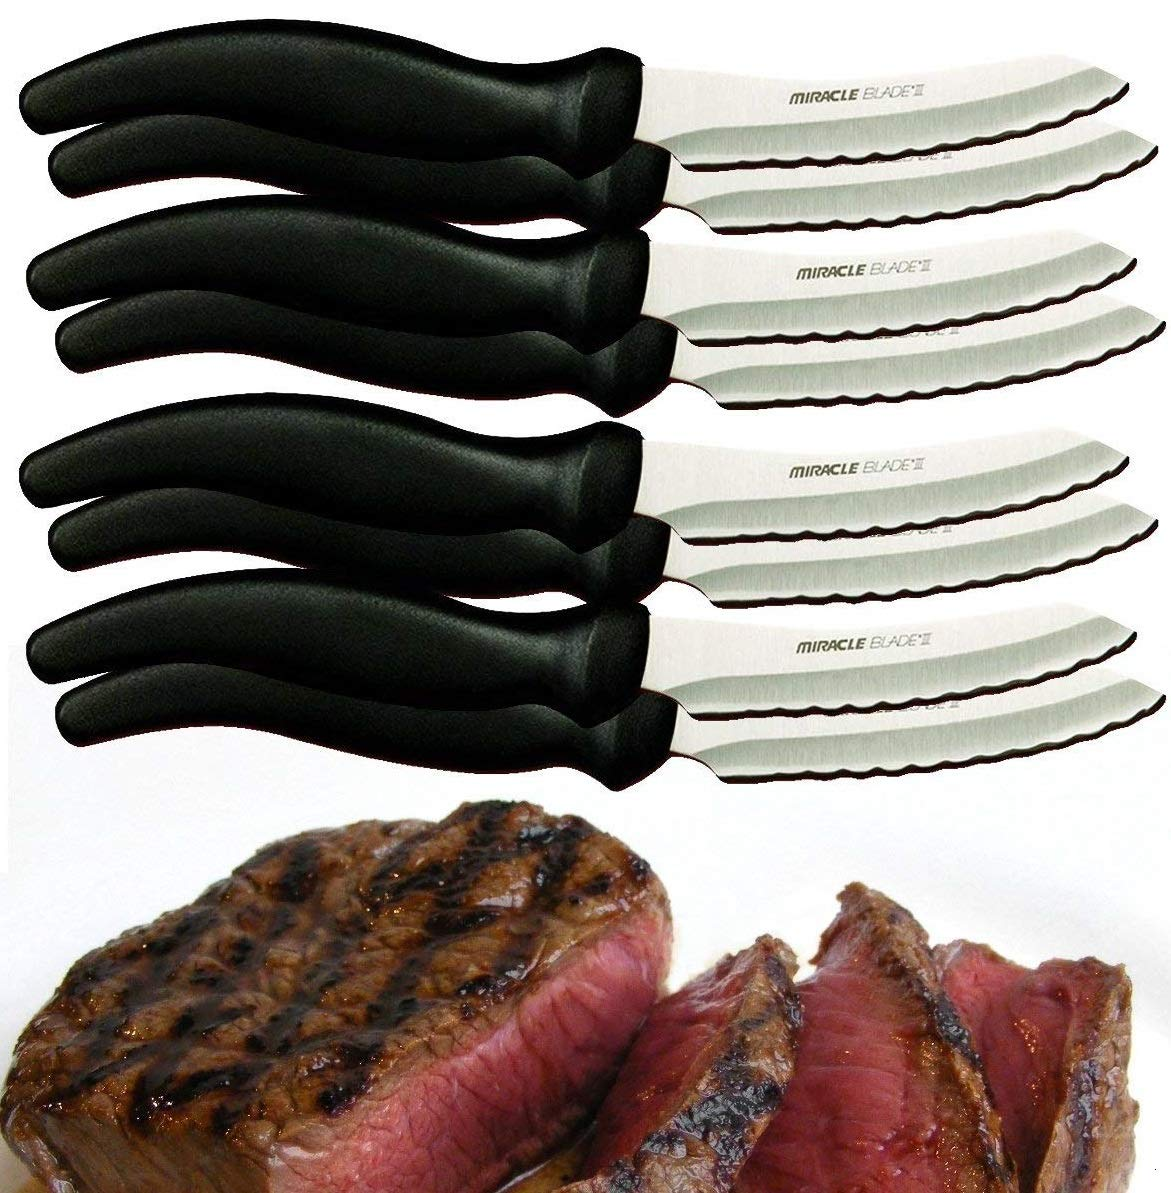 Miracle Blade III Perfection Series 8 Piece Steak Knife Set